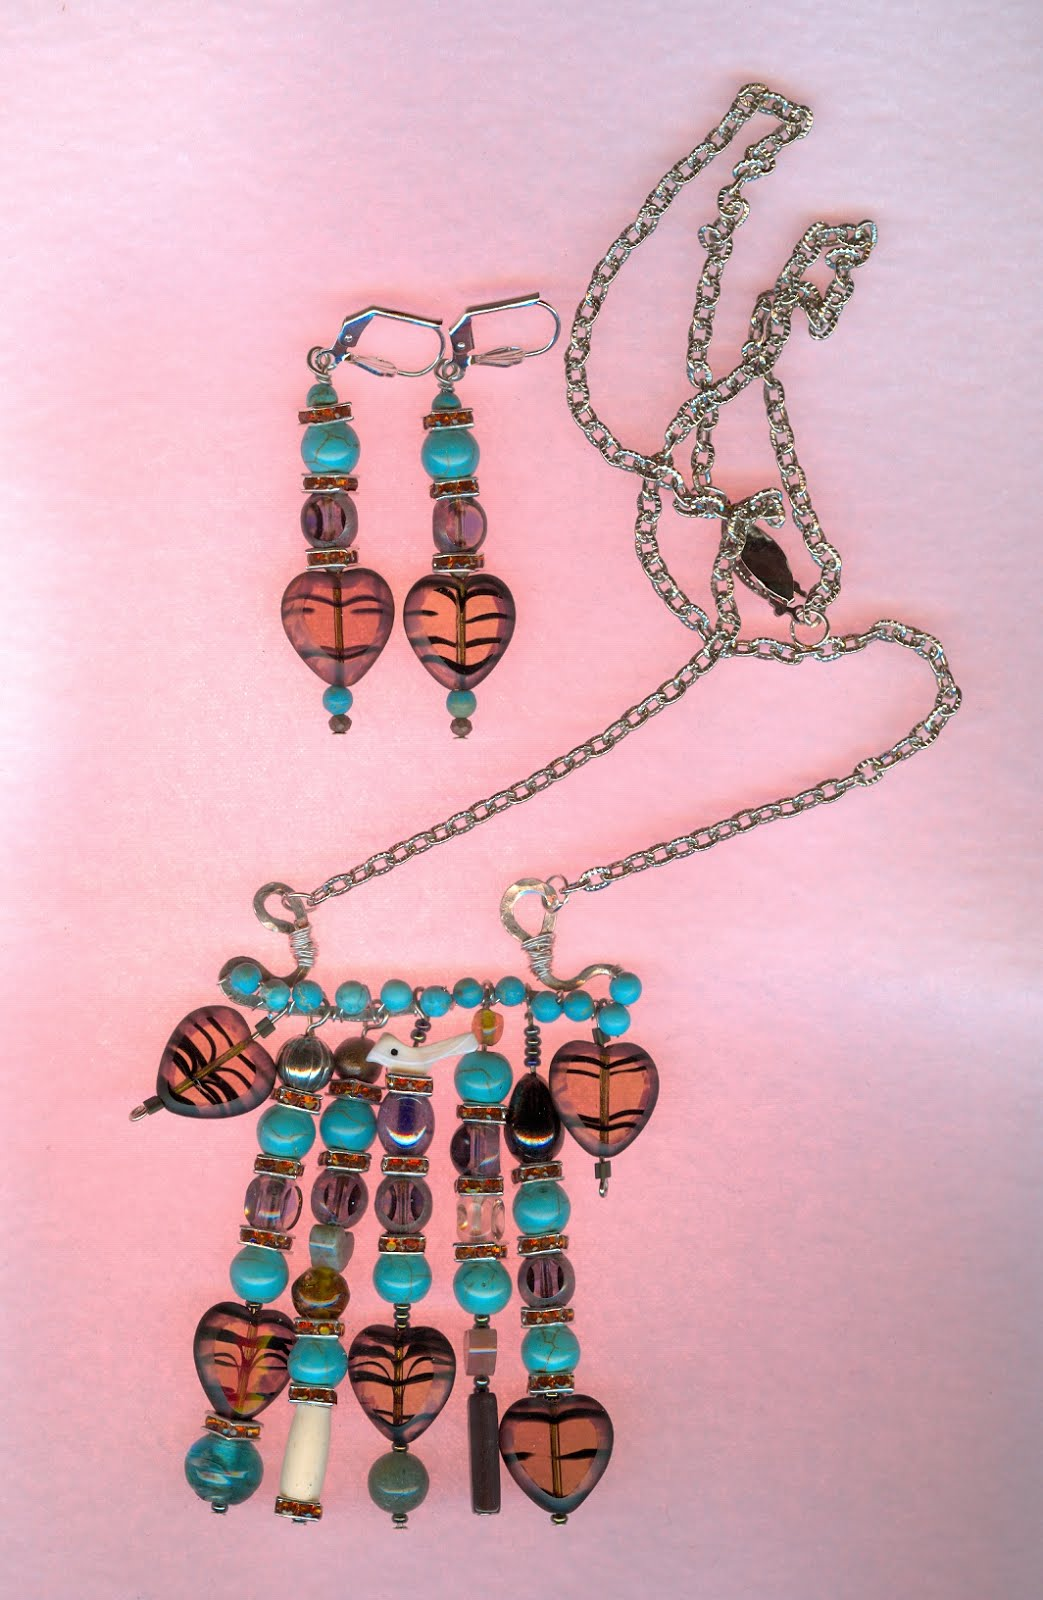 Bohemium necklace and earrings